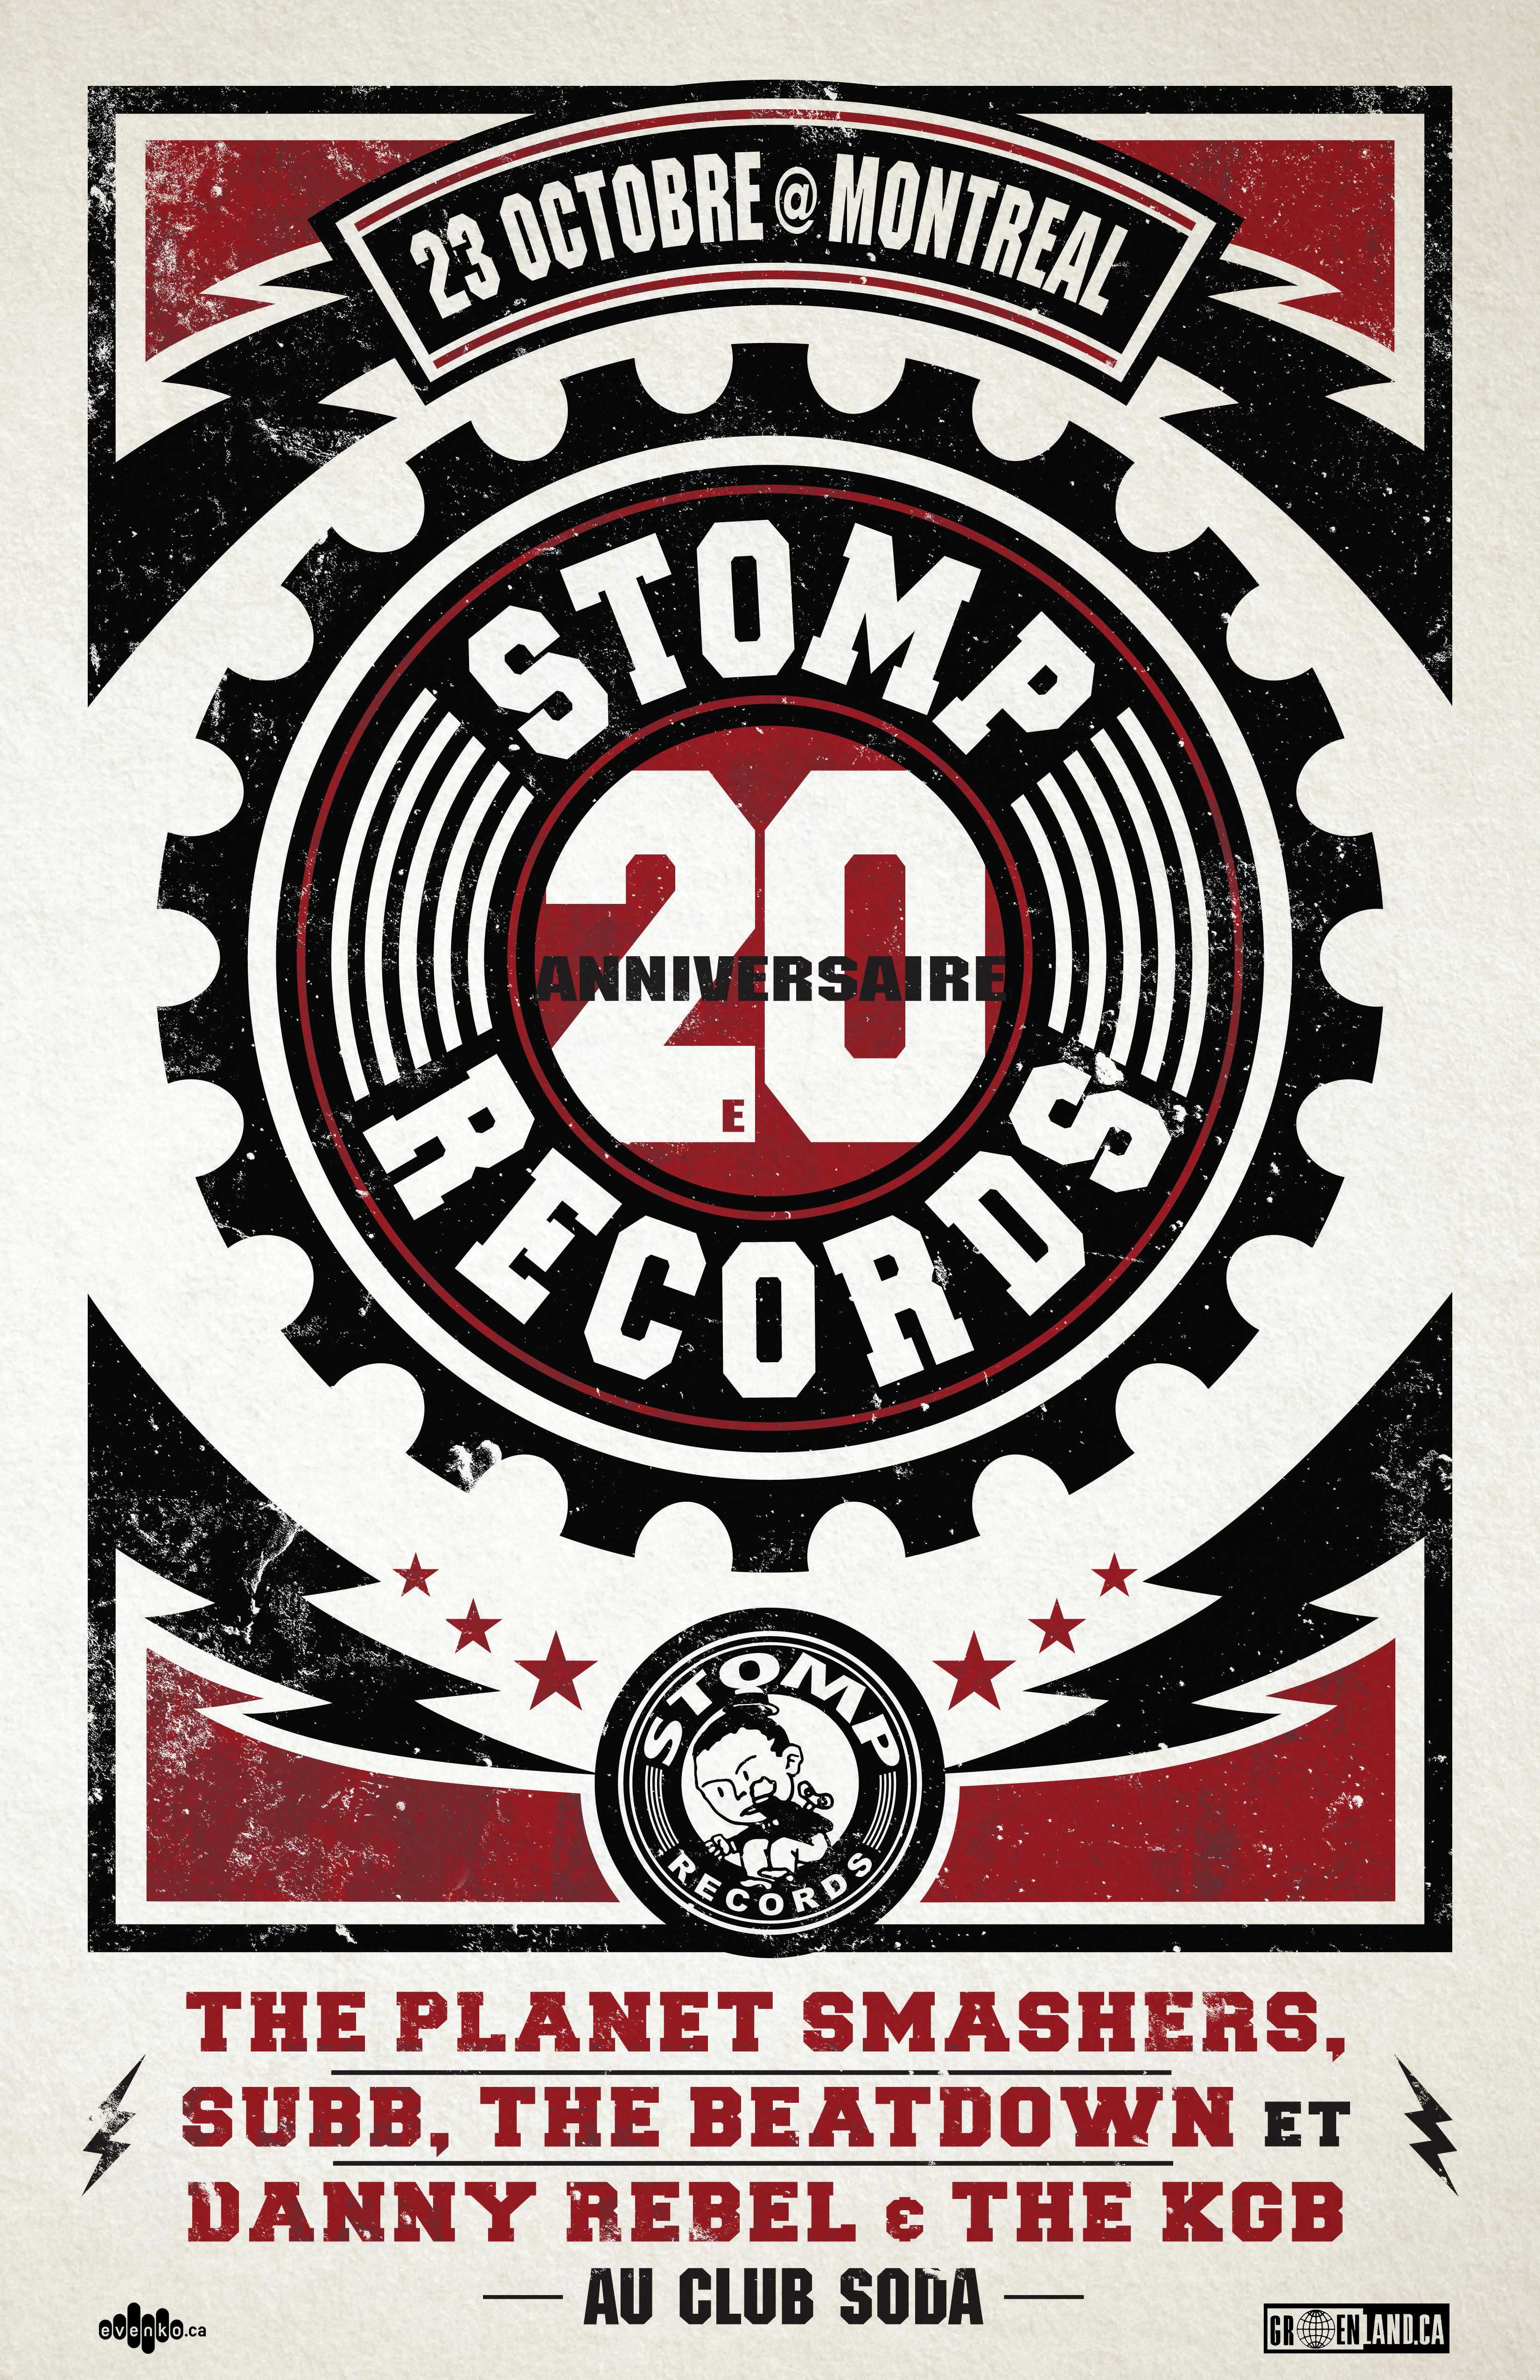 151023_STOMP20th_Poster